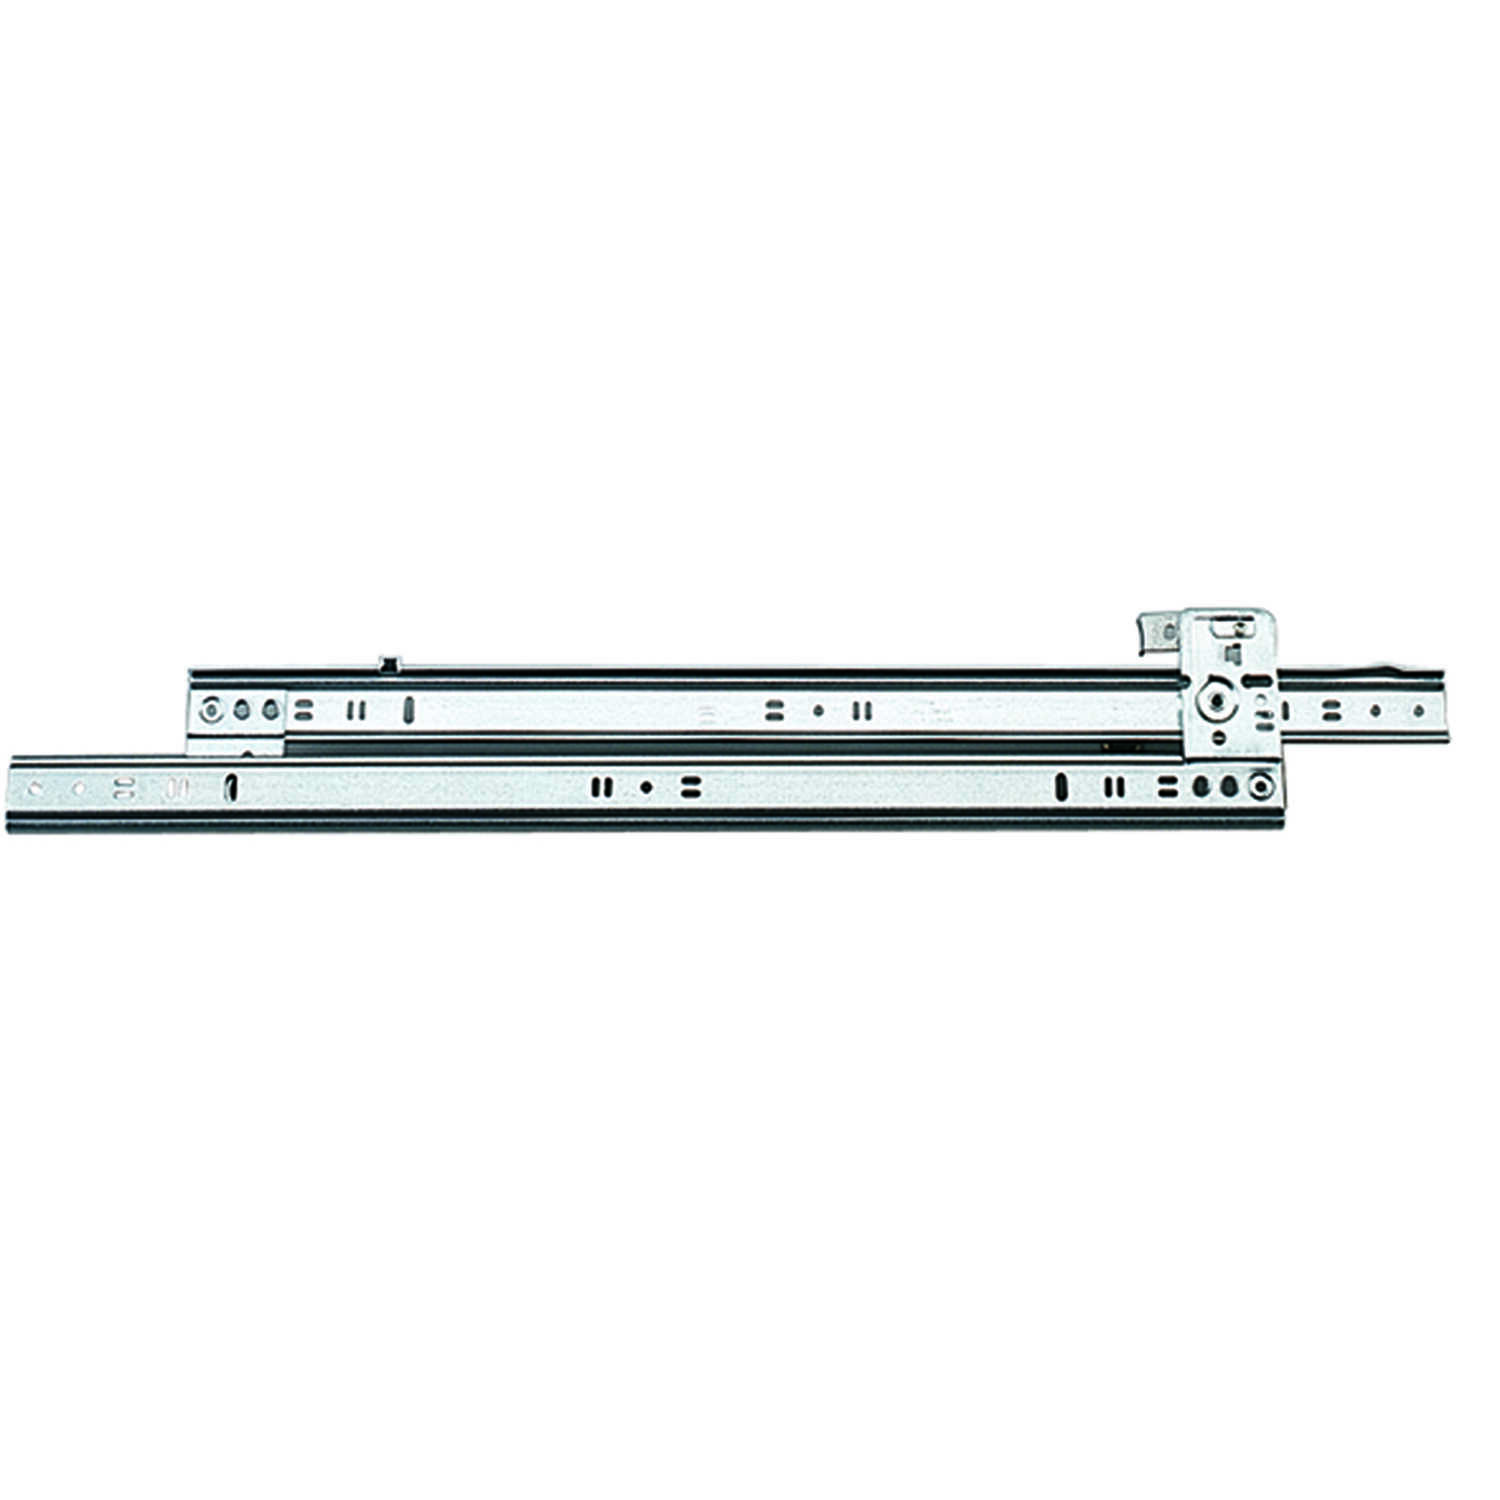 Knape & Vogt  18 in. L Steel  Full Extension  Drawer Slide  1 pair